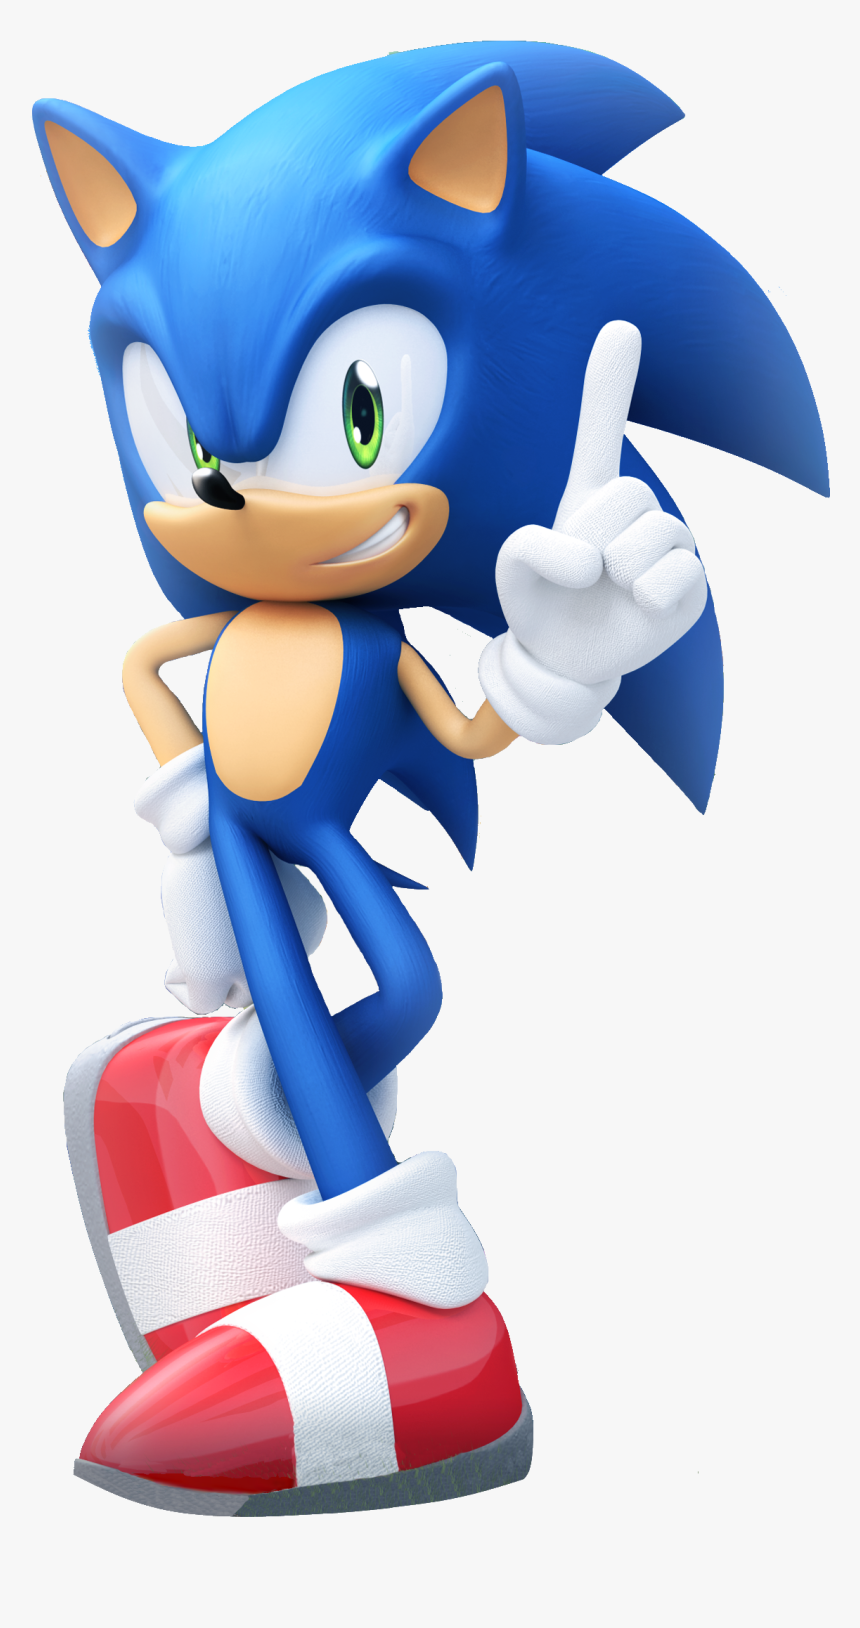 Sonic The Hedgehog Sonic The Hedgehog Png Transparent Png Download Transparent Png Image Pngitem